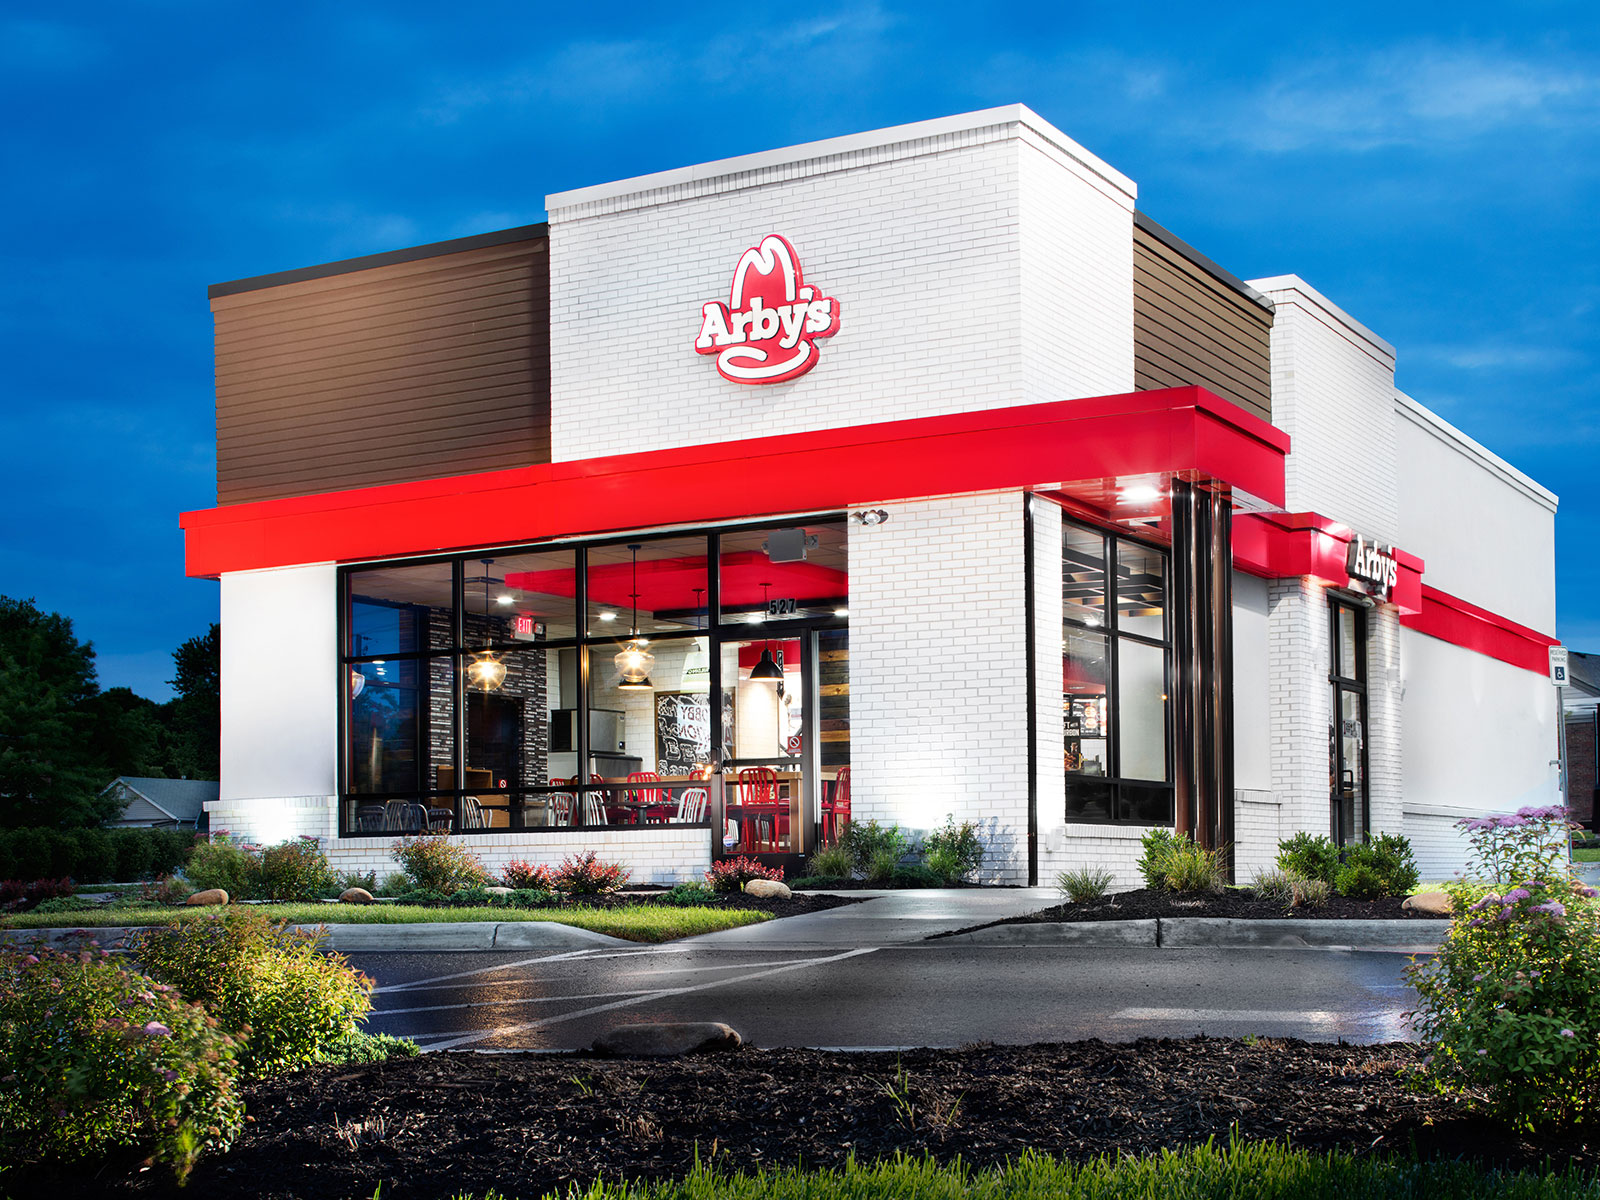 Where Does Arby's Get All That Venison?